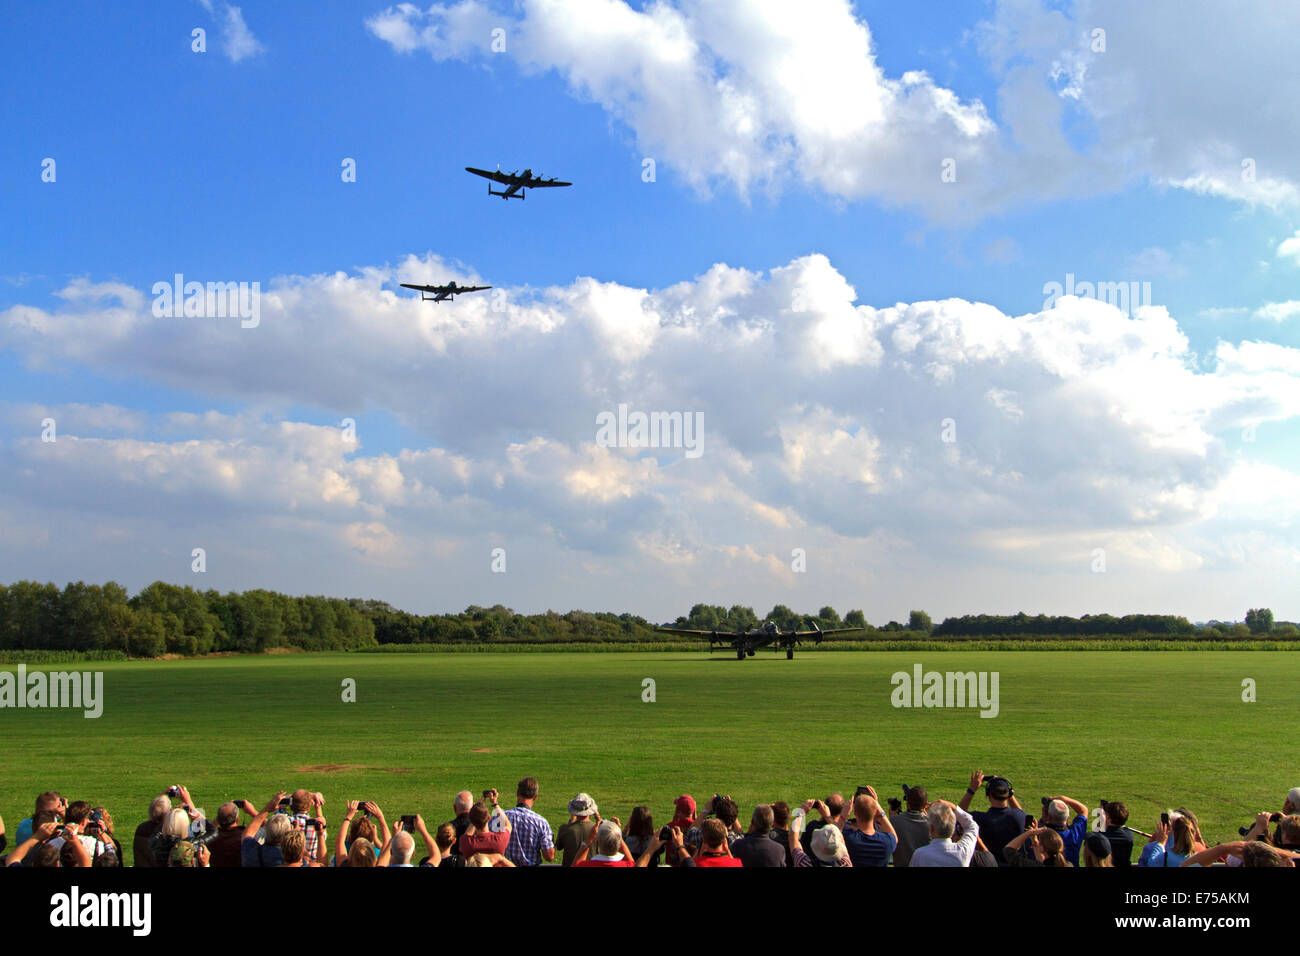 Lincolnshire, UK. 7th Sep, 2014. saw a spectacular public event and unique moment in aviation history at the Lincolnshire - Stock Image